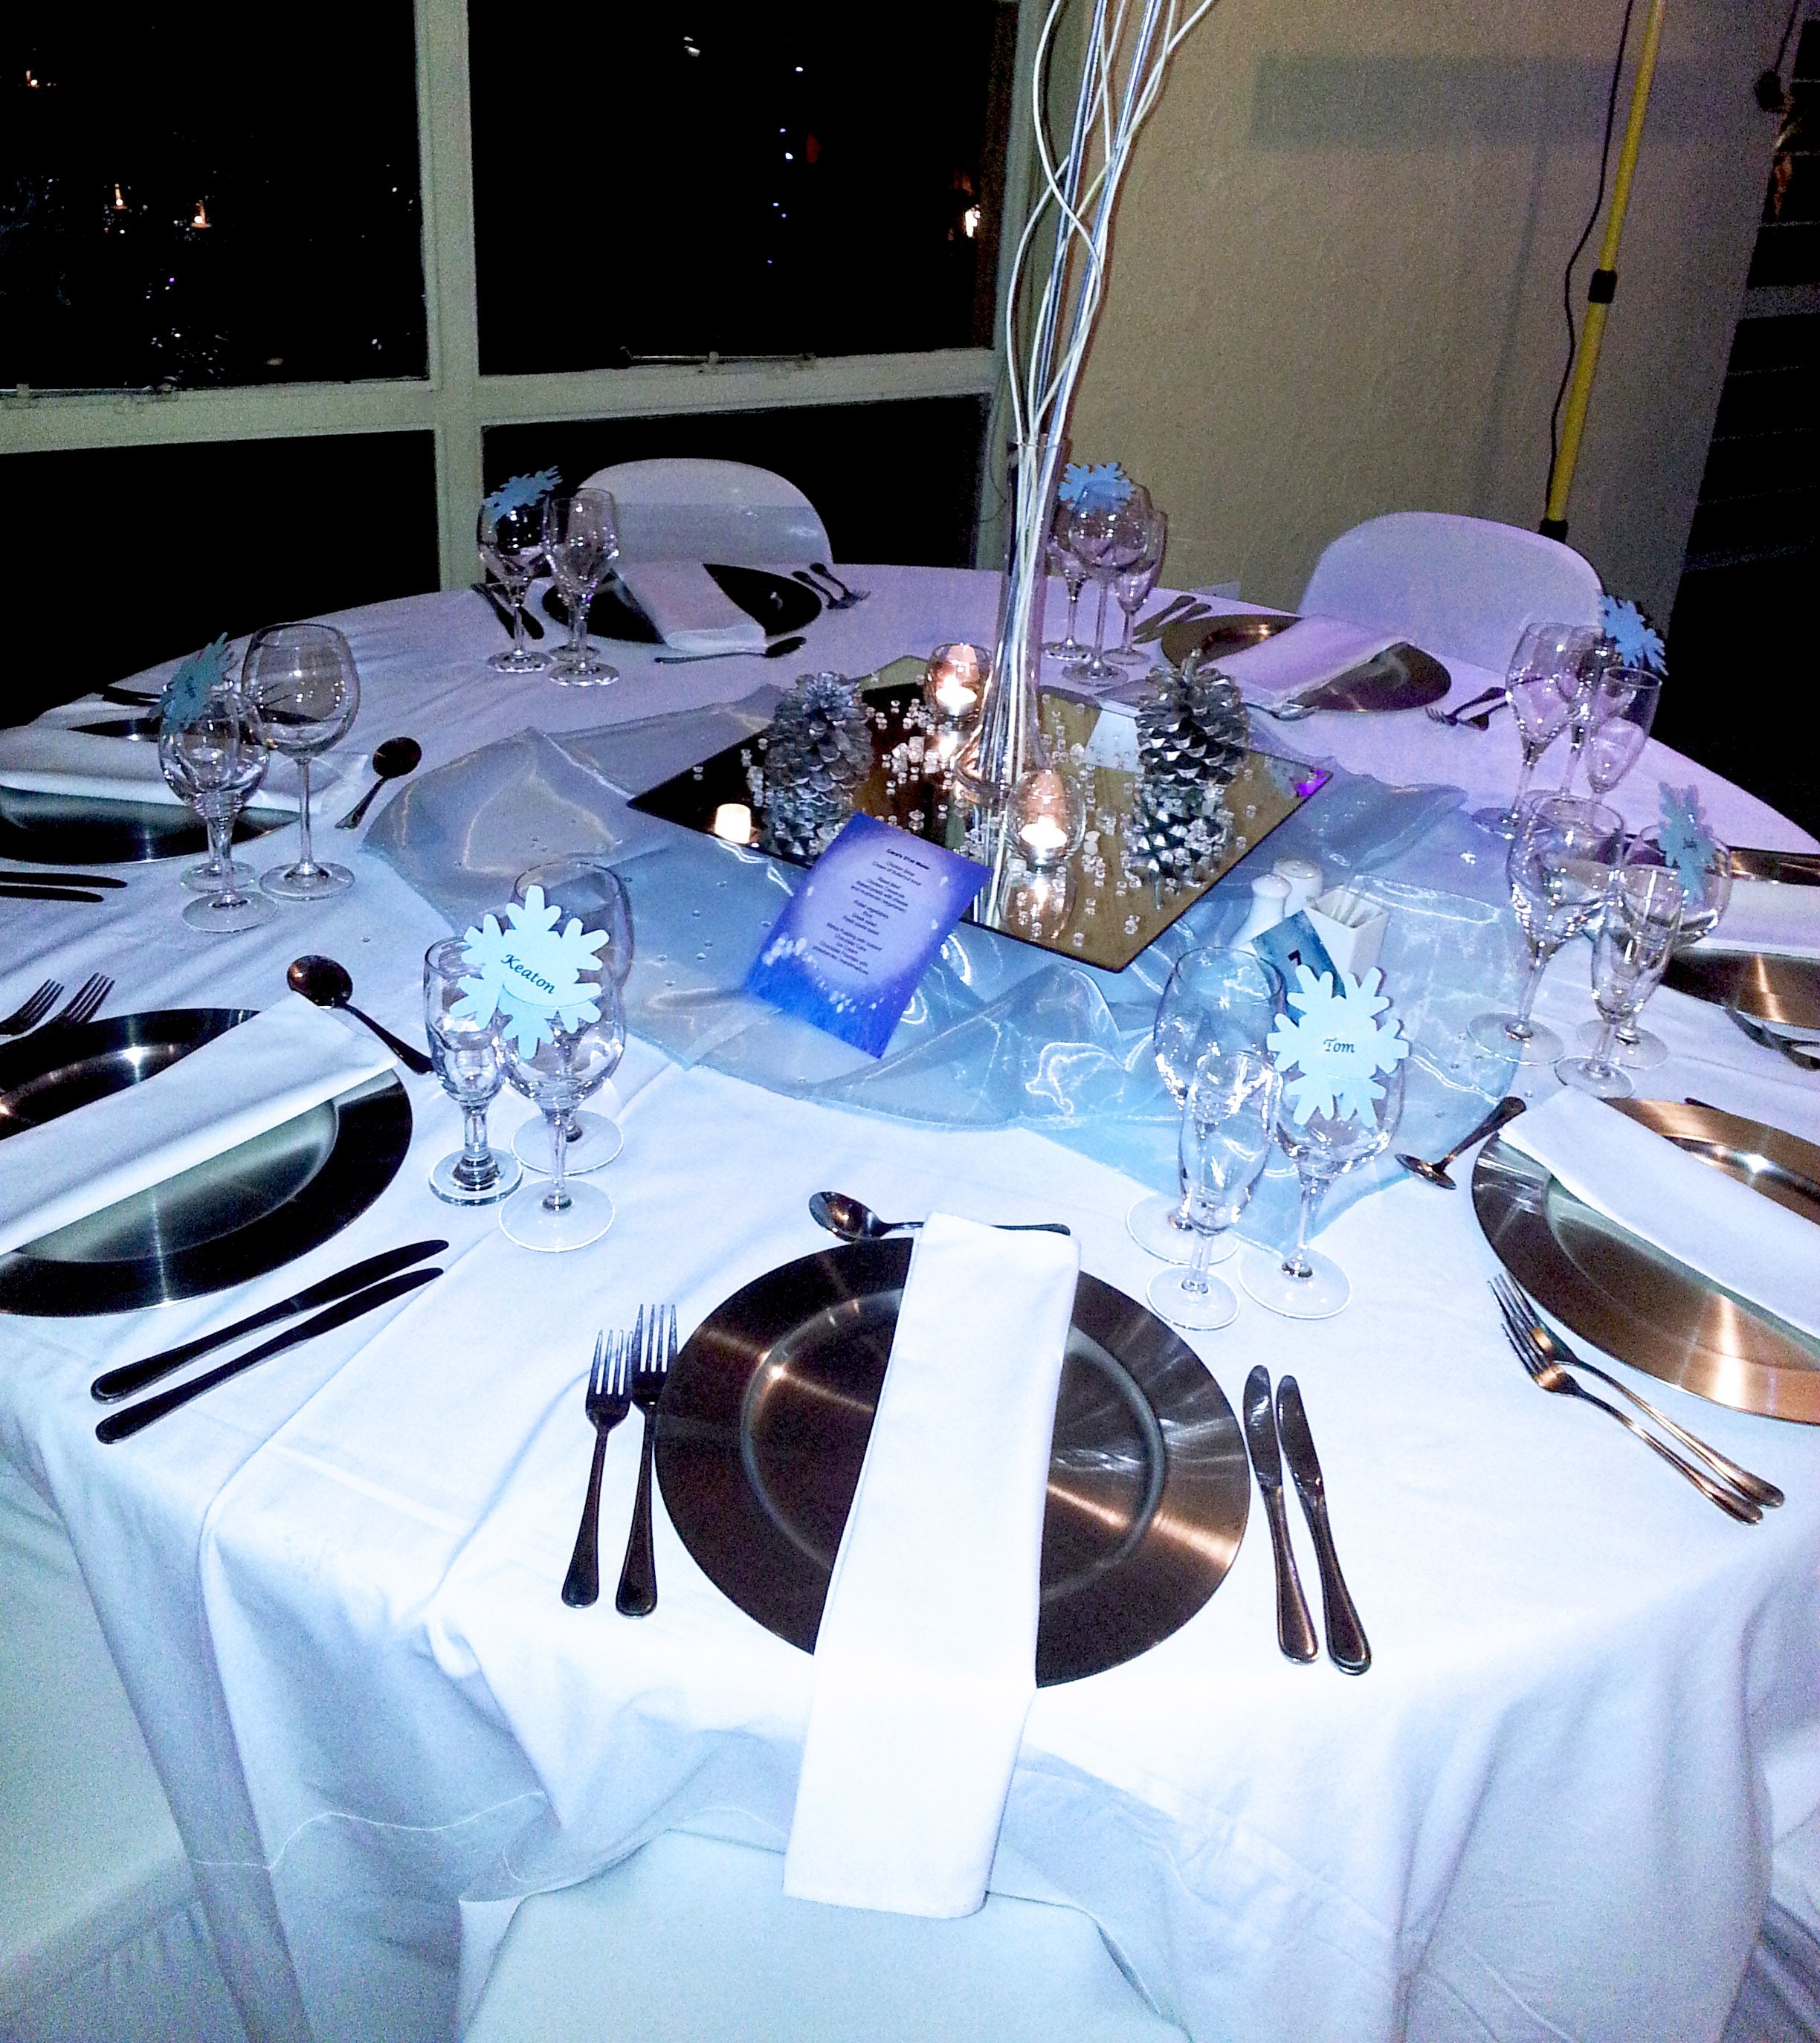 Winter Wonderland Table Decor At Cabanga Conference Centre